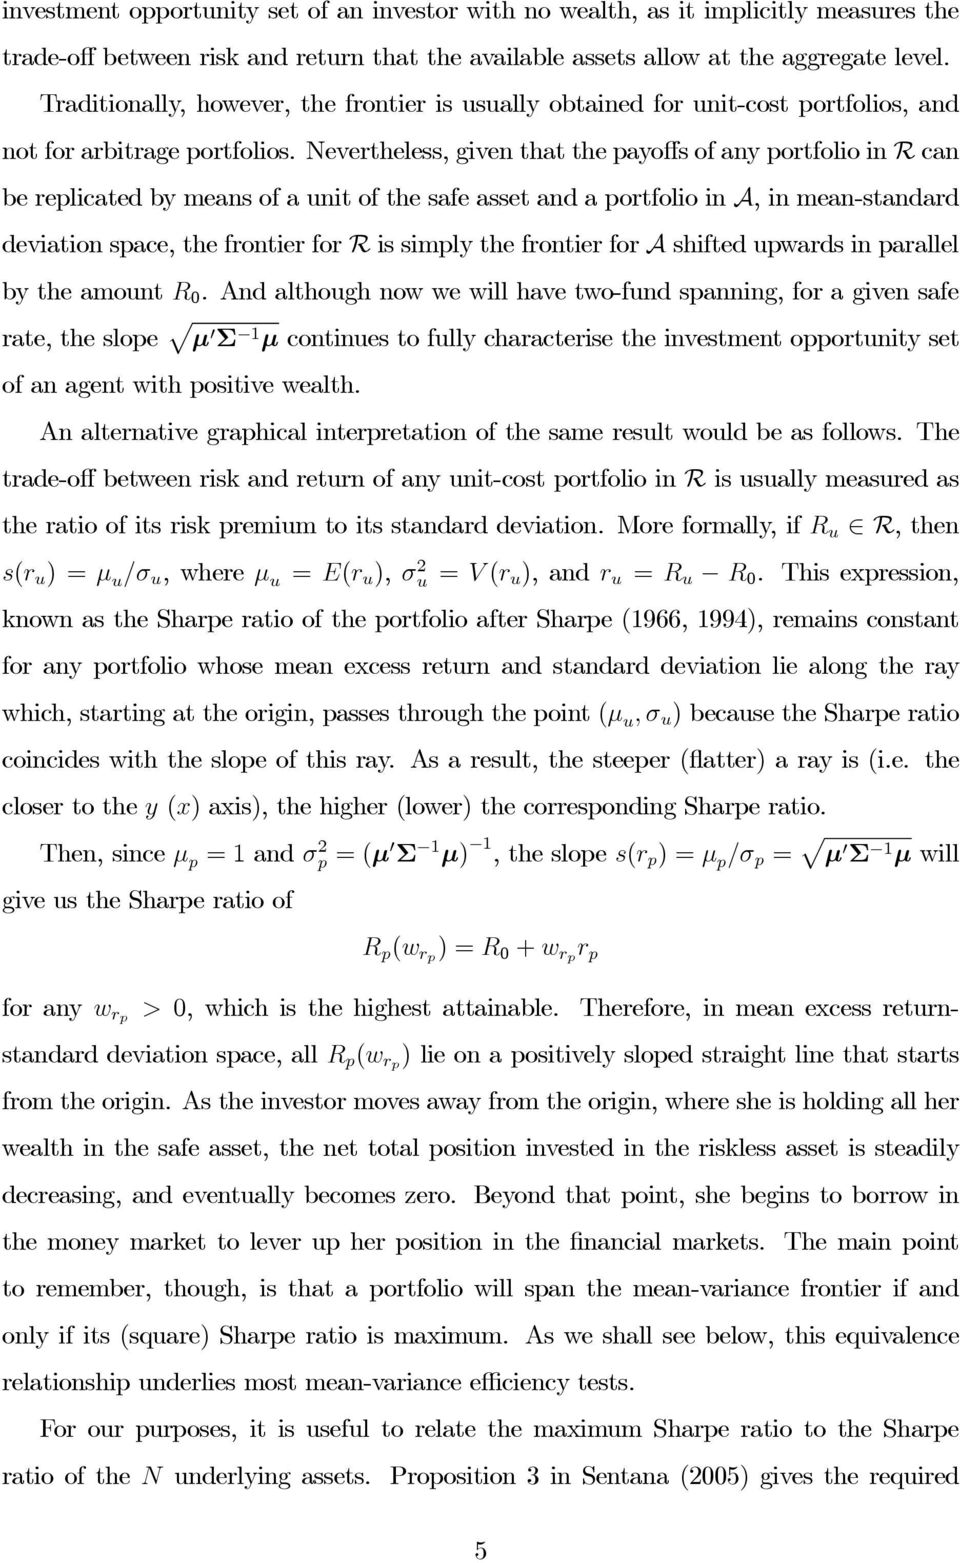 Nevertheless, given that the payoffsofanyportfolioinr can be replicated by means of a unit of the safe asset and a portfolio in A, in mean-standard deviation space, the frontier for R is simply the